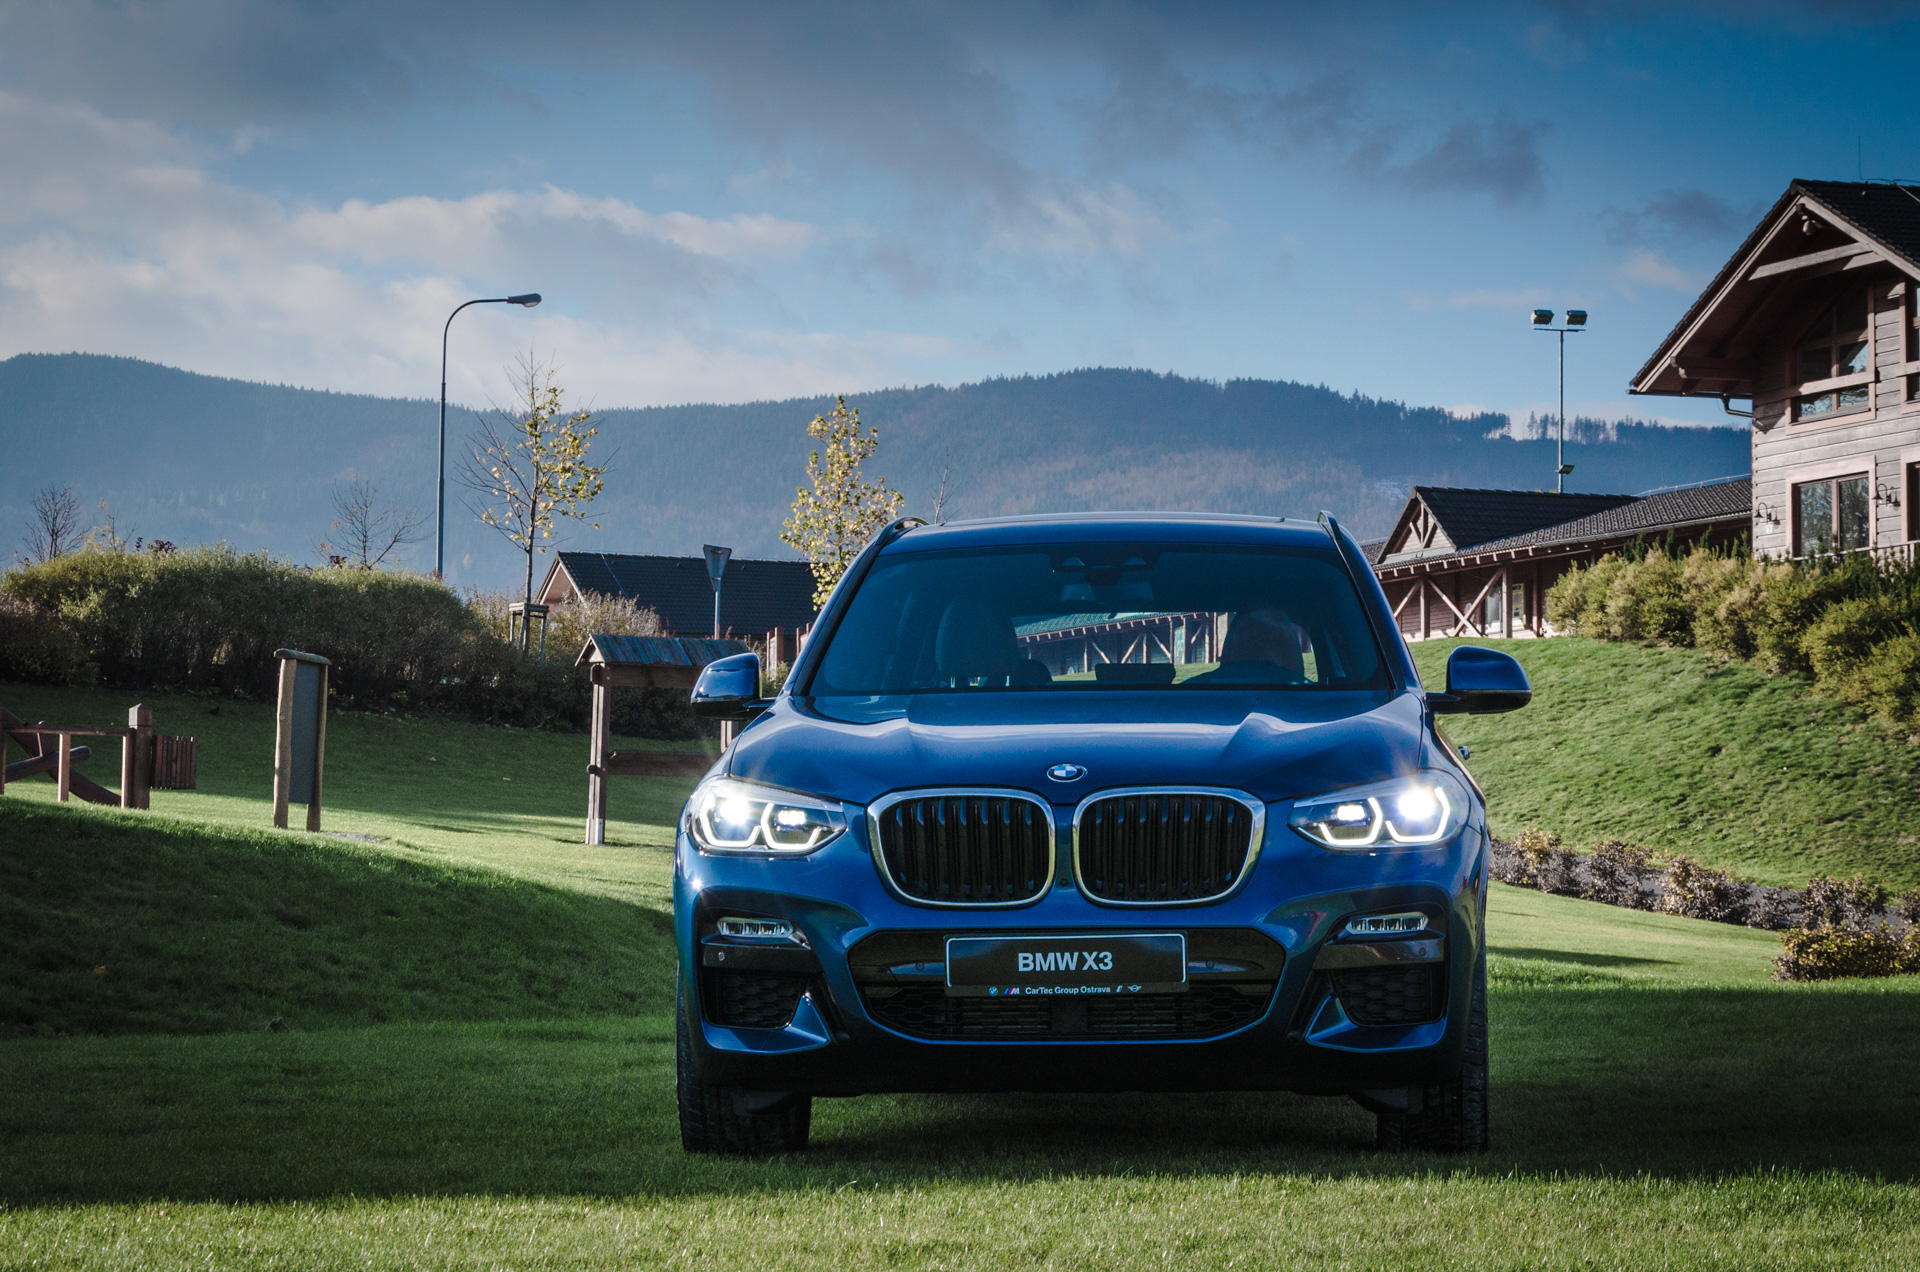 BMW X3 ROADSHOW